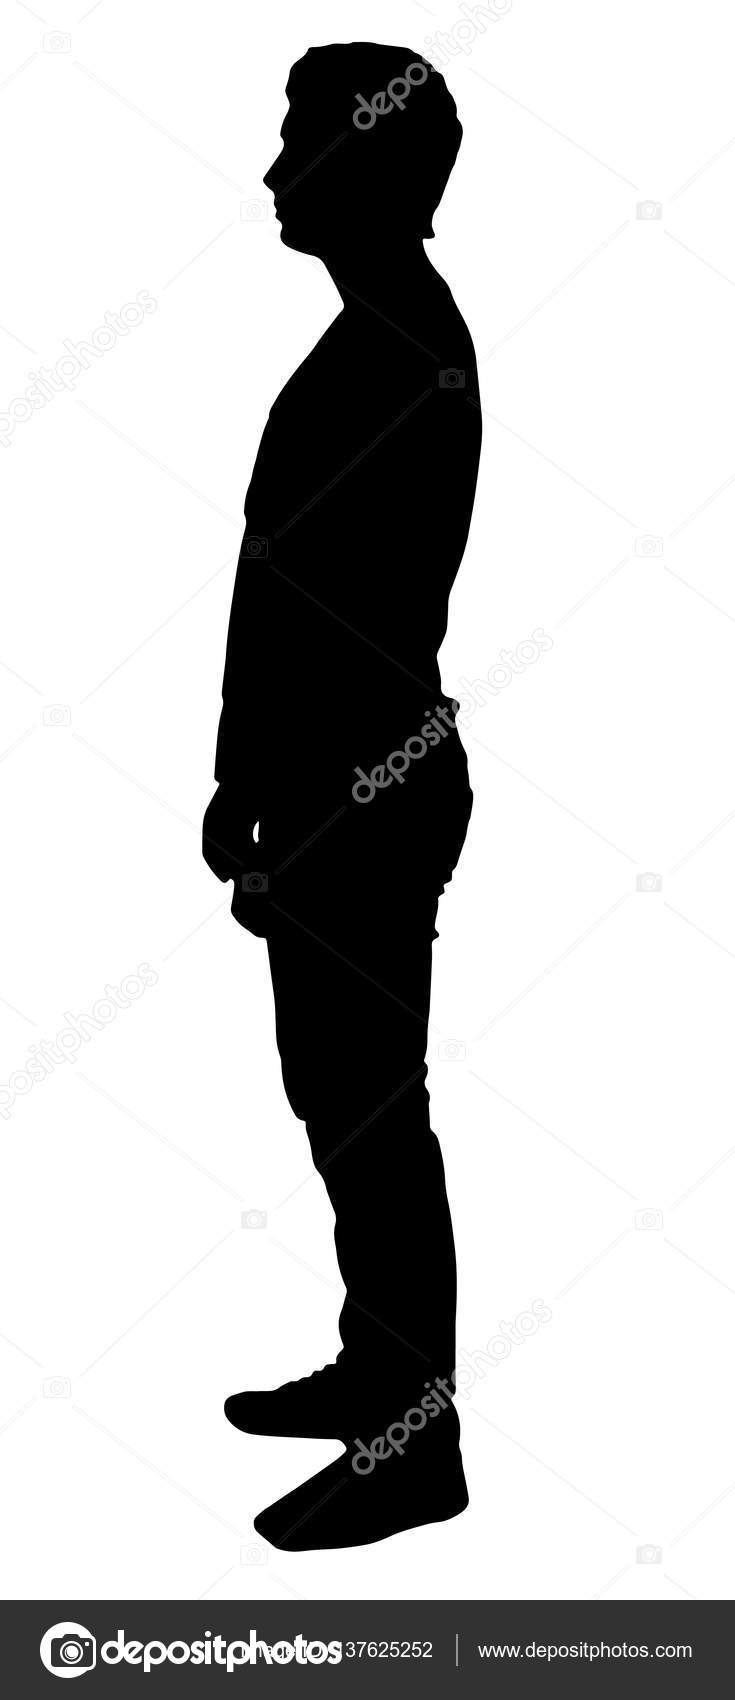 735x1700 Silhouette Of A Man Who Stands Sideways Stock Vector Persalius